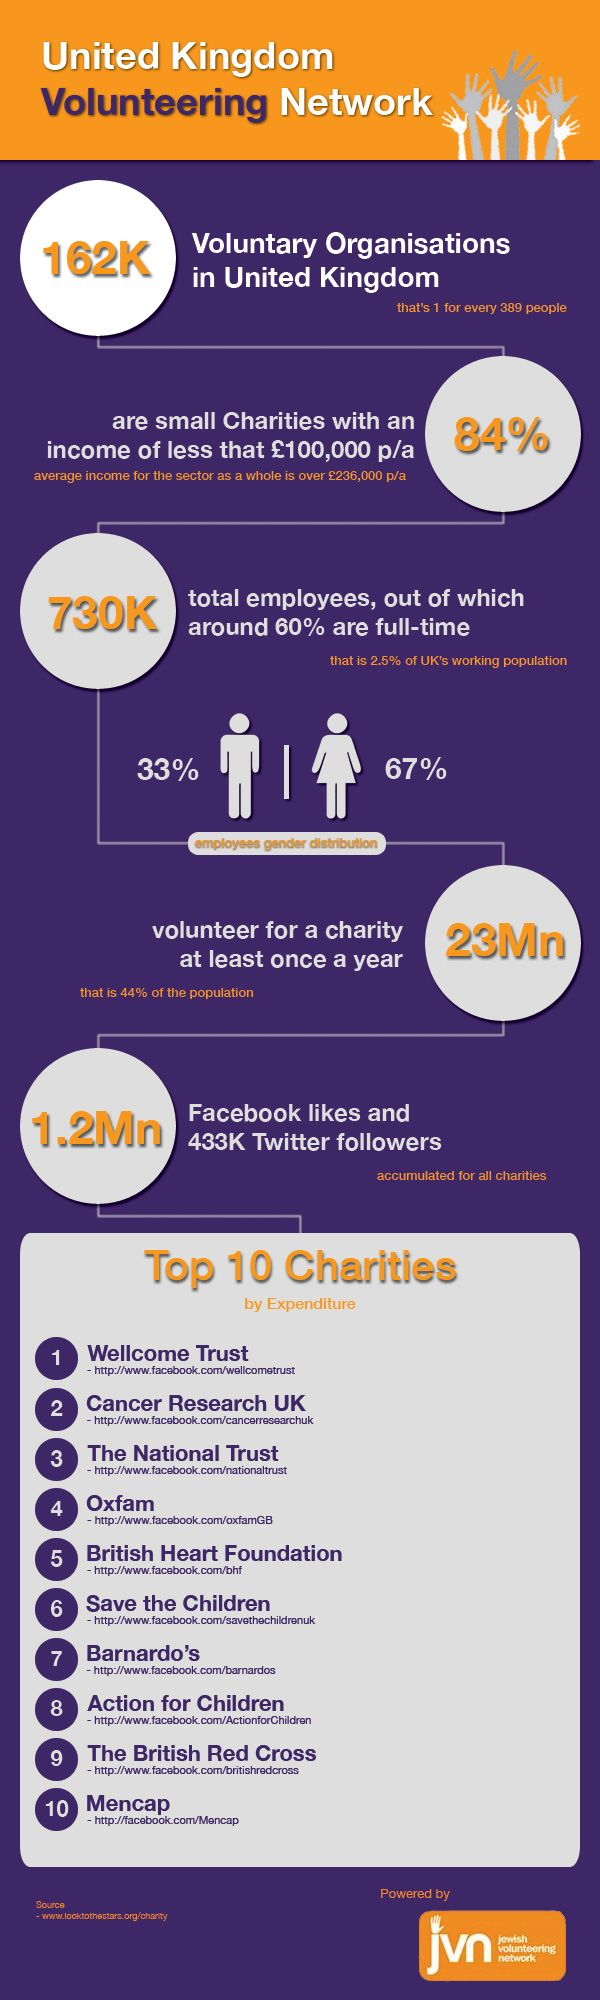 Great new infographic on volunteering in the UK from the Jewish Volunteering Network